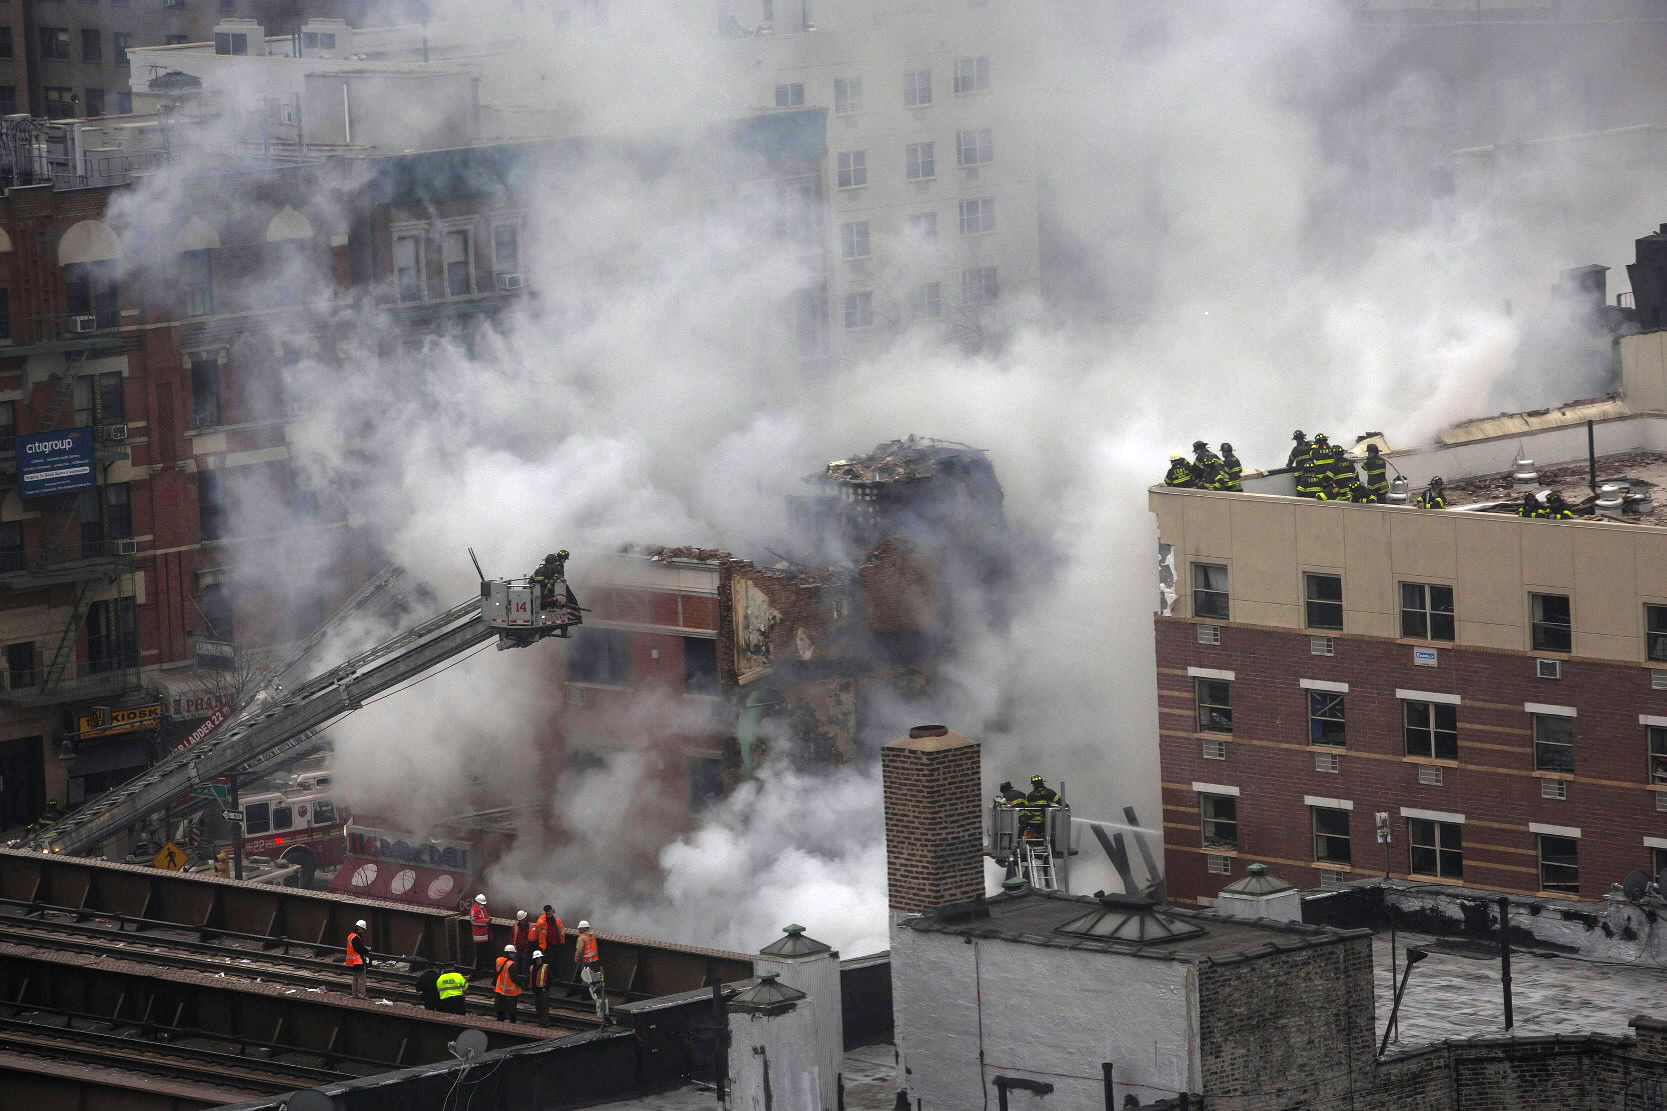 New York City firefighters examine the rubble at an apparent building explosion, fire and collapse in the Harlem section of New York, March 12, 2014. Two buildings collapsed in an explosion in Upper Manhattan on Wednesday, killing at least three, injuring at least 17 and setting off a search for anyone trapped in the debris, witnesses and officials said.